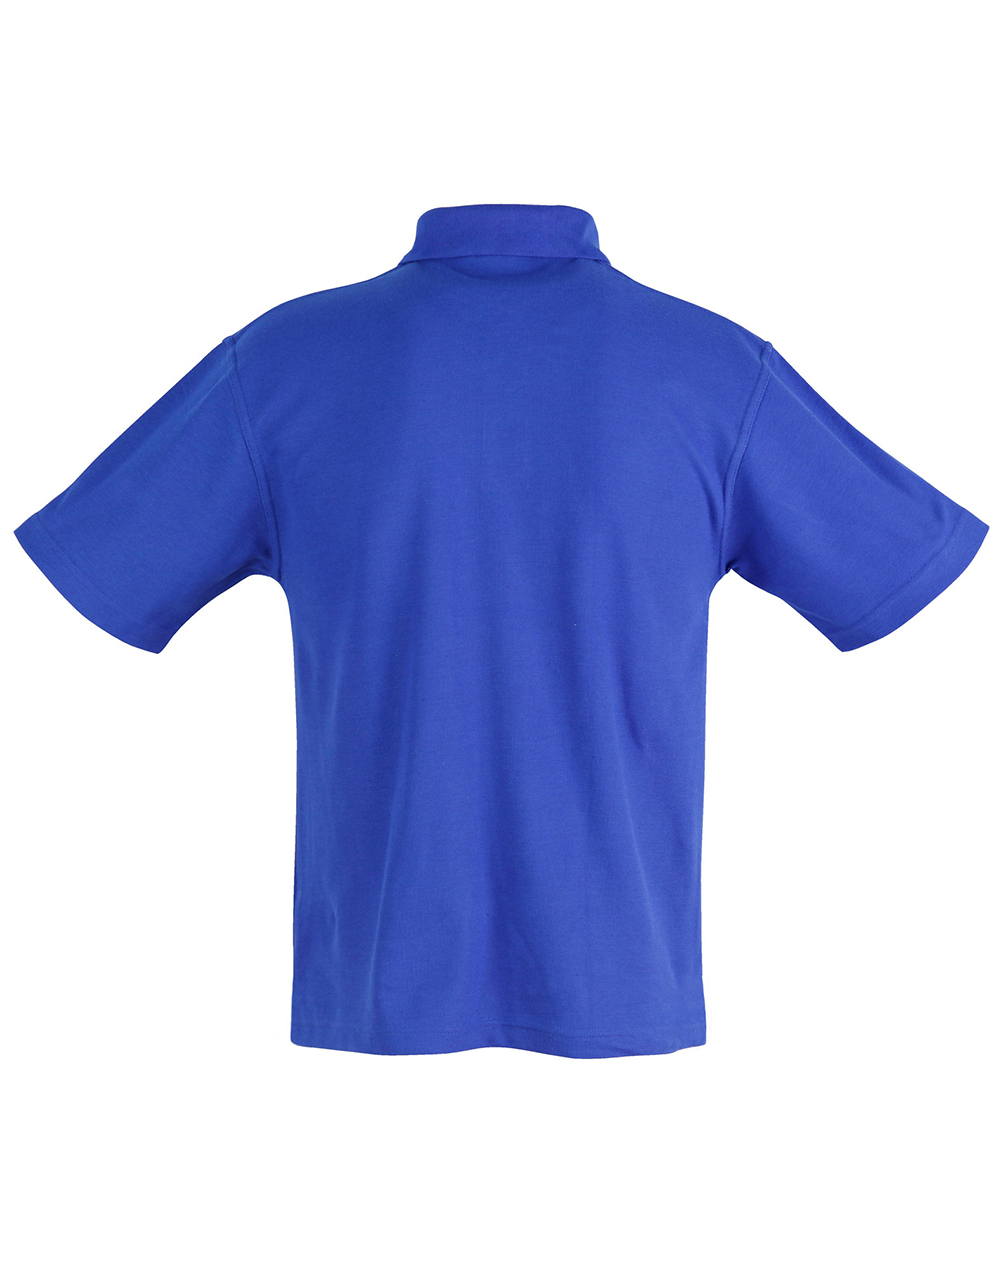 https://s3-ap-southeast-1.amazonaws.com/ws-imgs/POLOSHIRTS/PS11K_Royal_Back_l.jpg